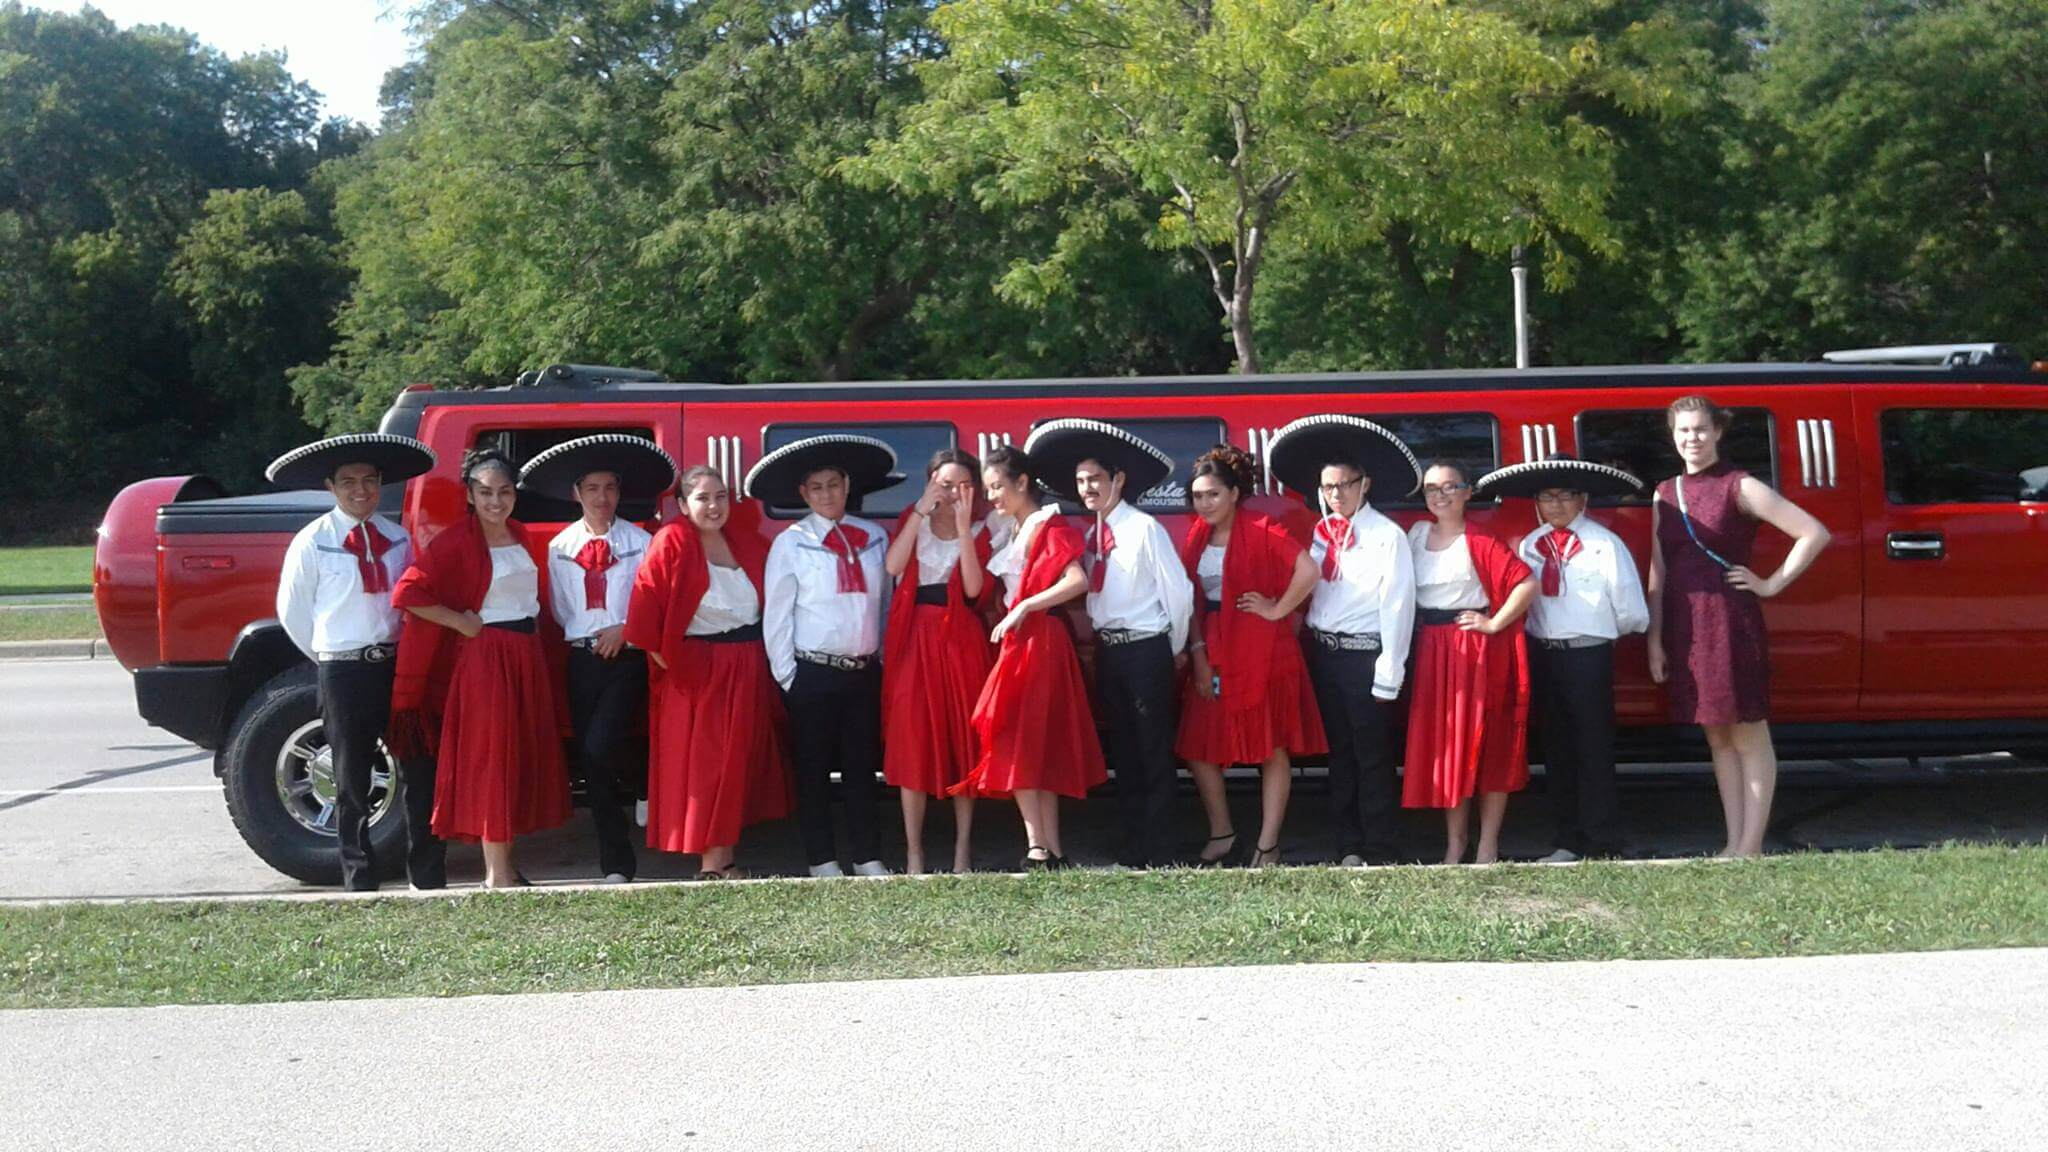 Red-Hummer-Limo-People-Celebrating